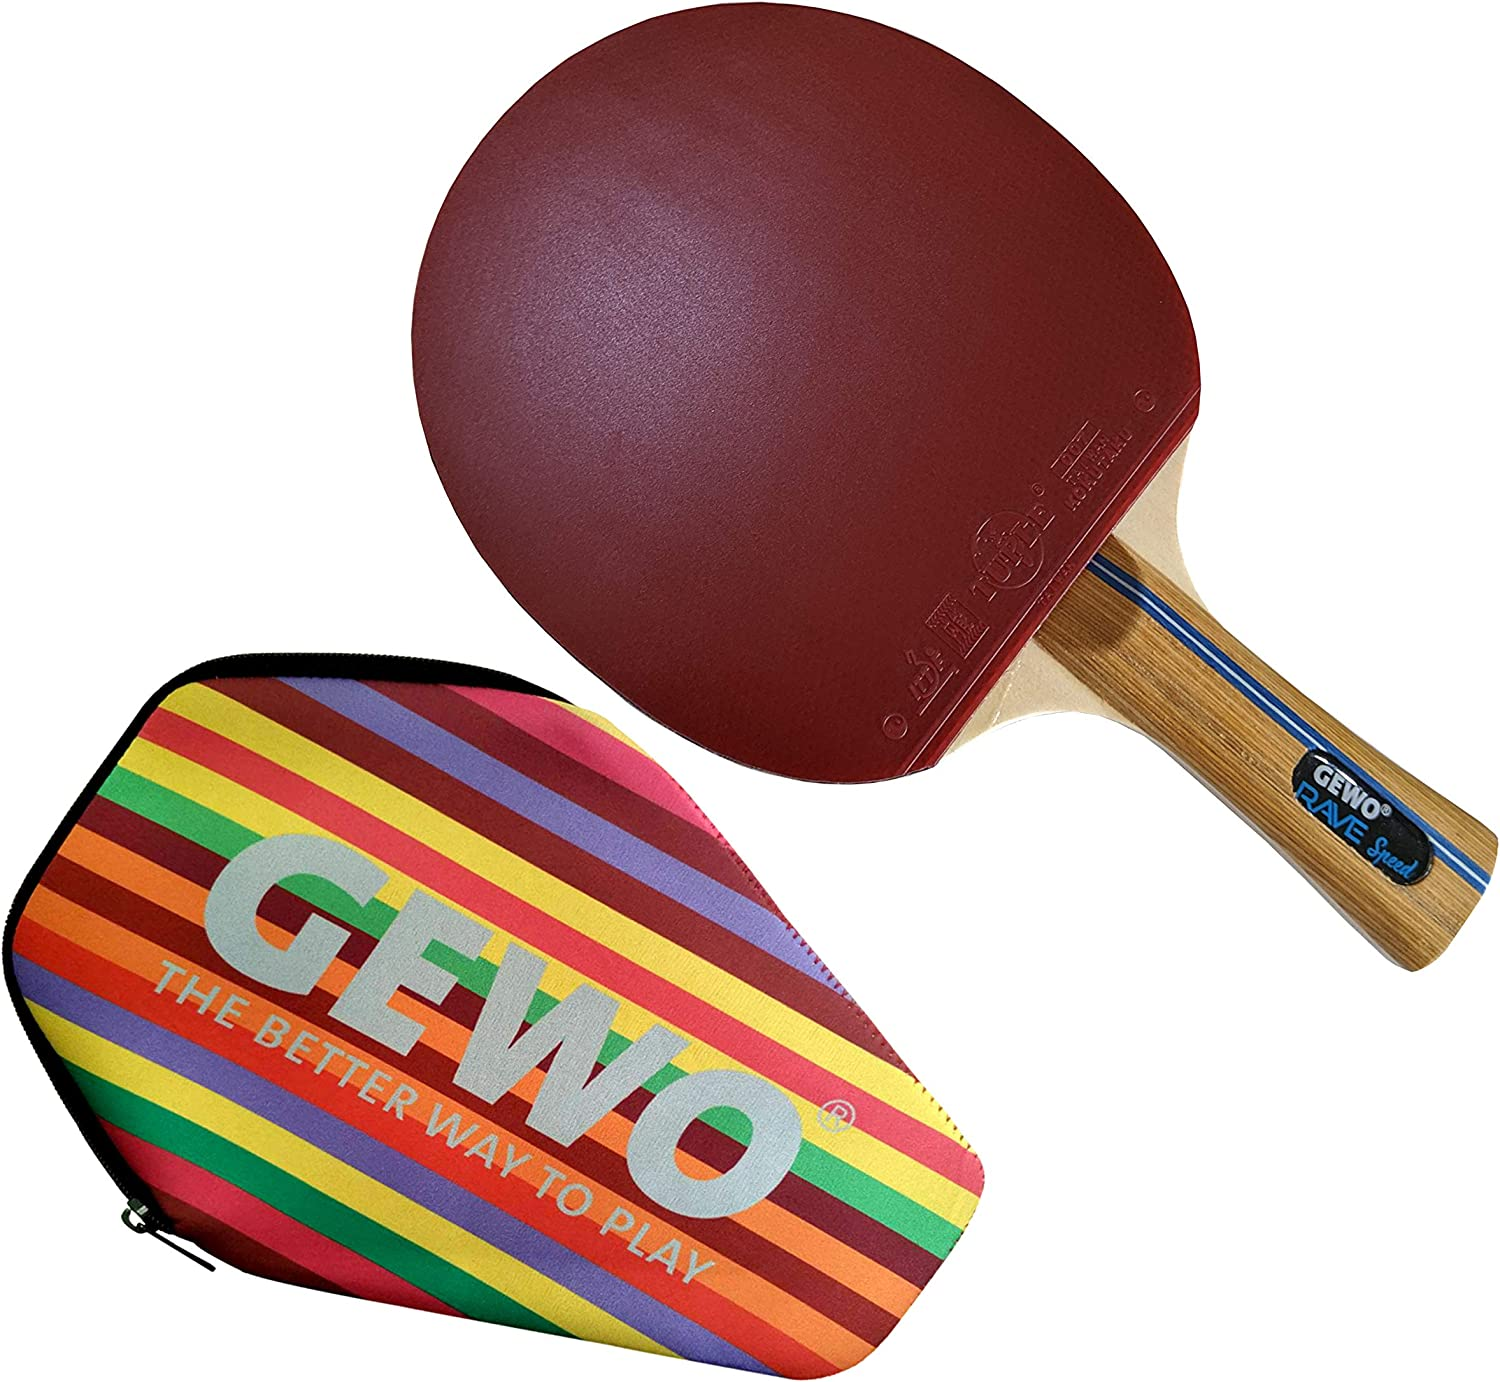 Max 73% OFF GEWO Rave Speed Upgraded Table Tennis with Max 82% OFF CASE. Great Racket Va